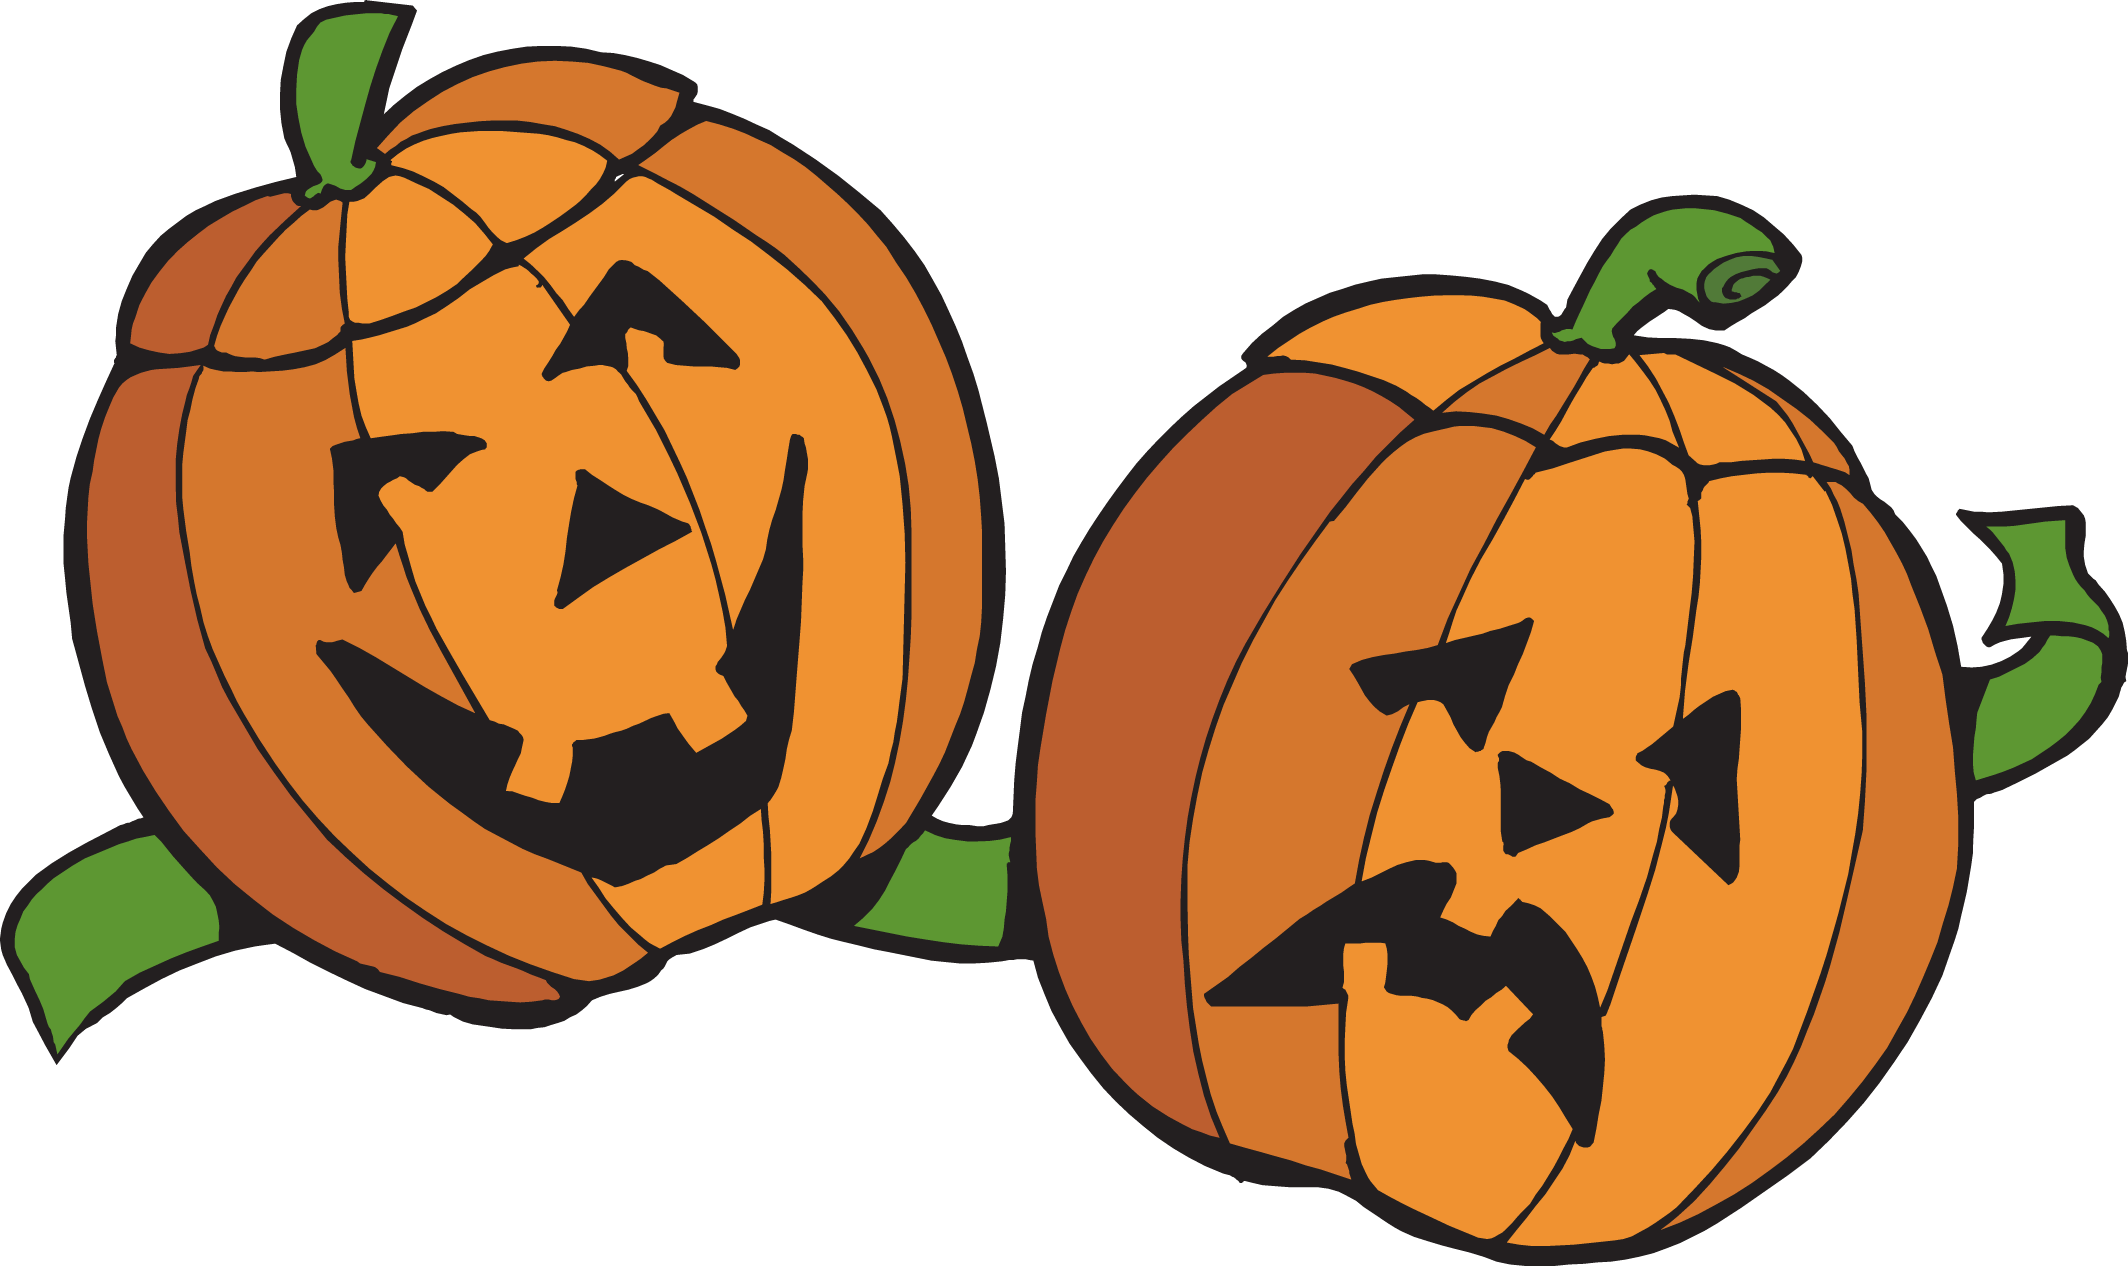 2128x1266 Squash Clipart Pumpkin Patch